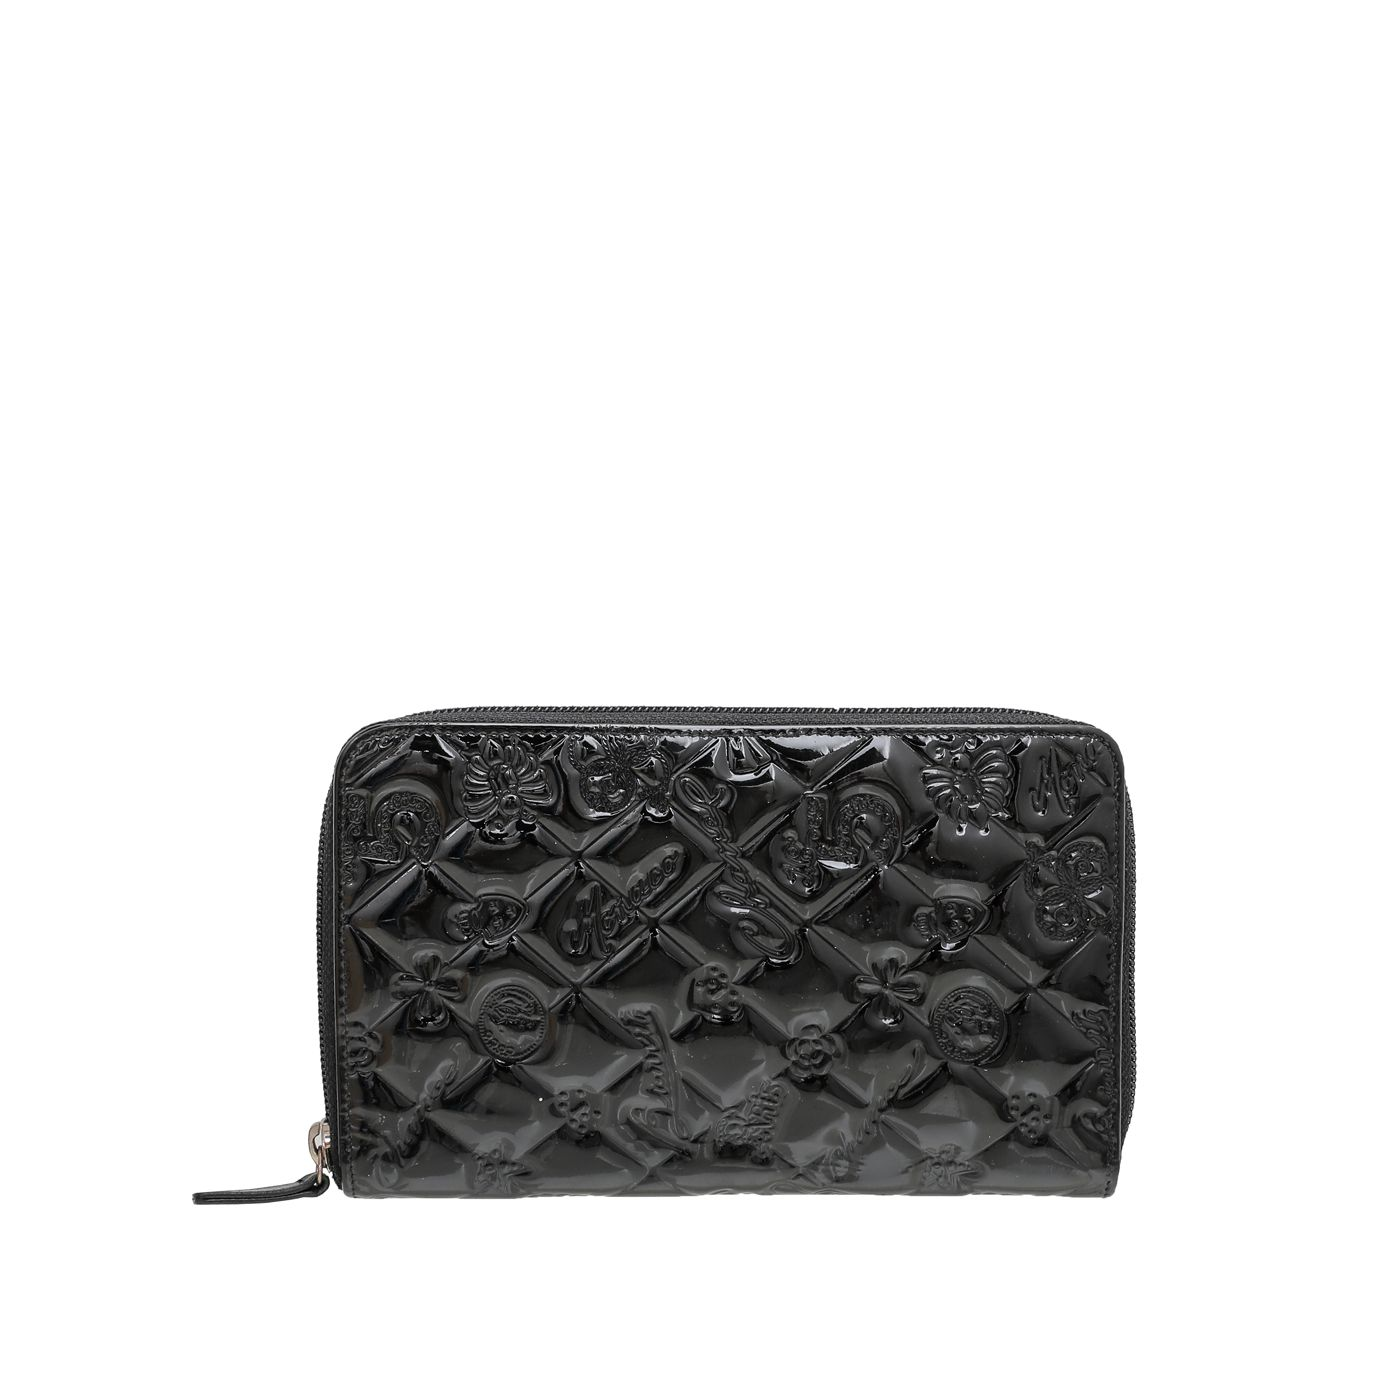 Chanel Black Charm Embossed Organizer Wallet